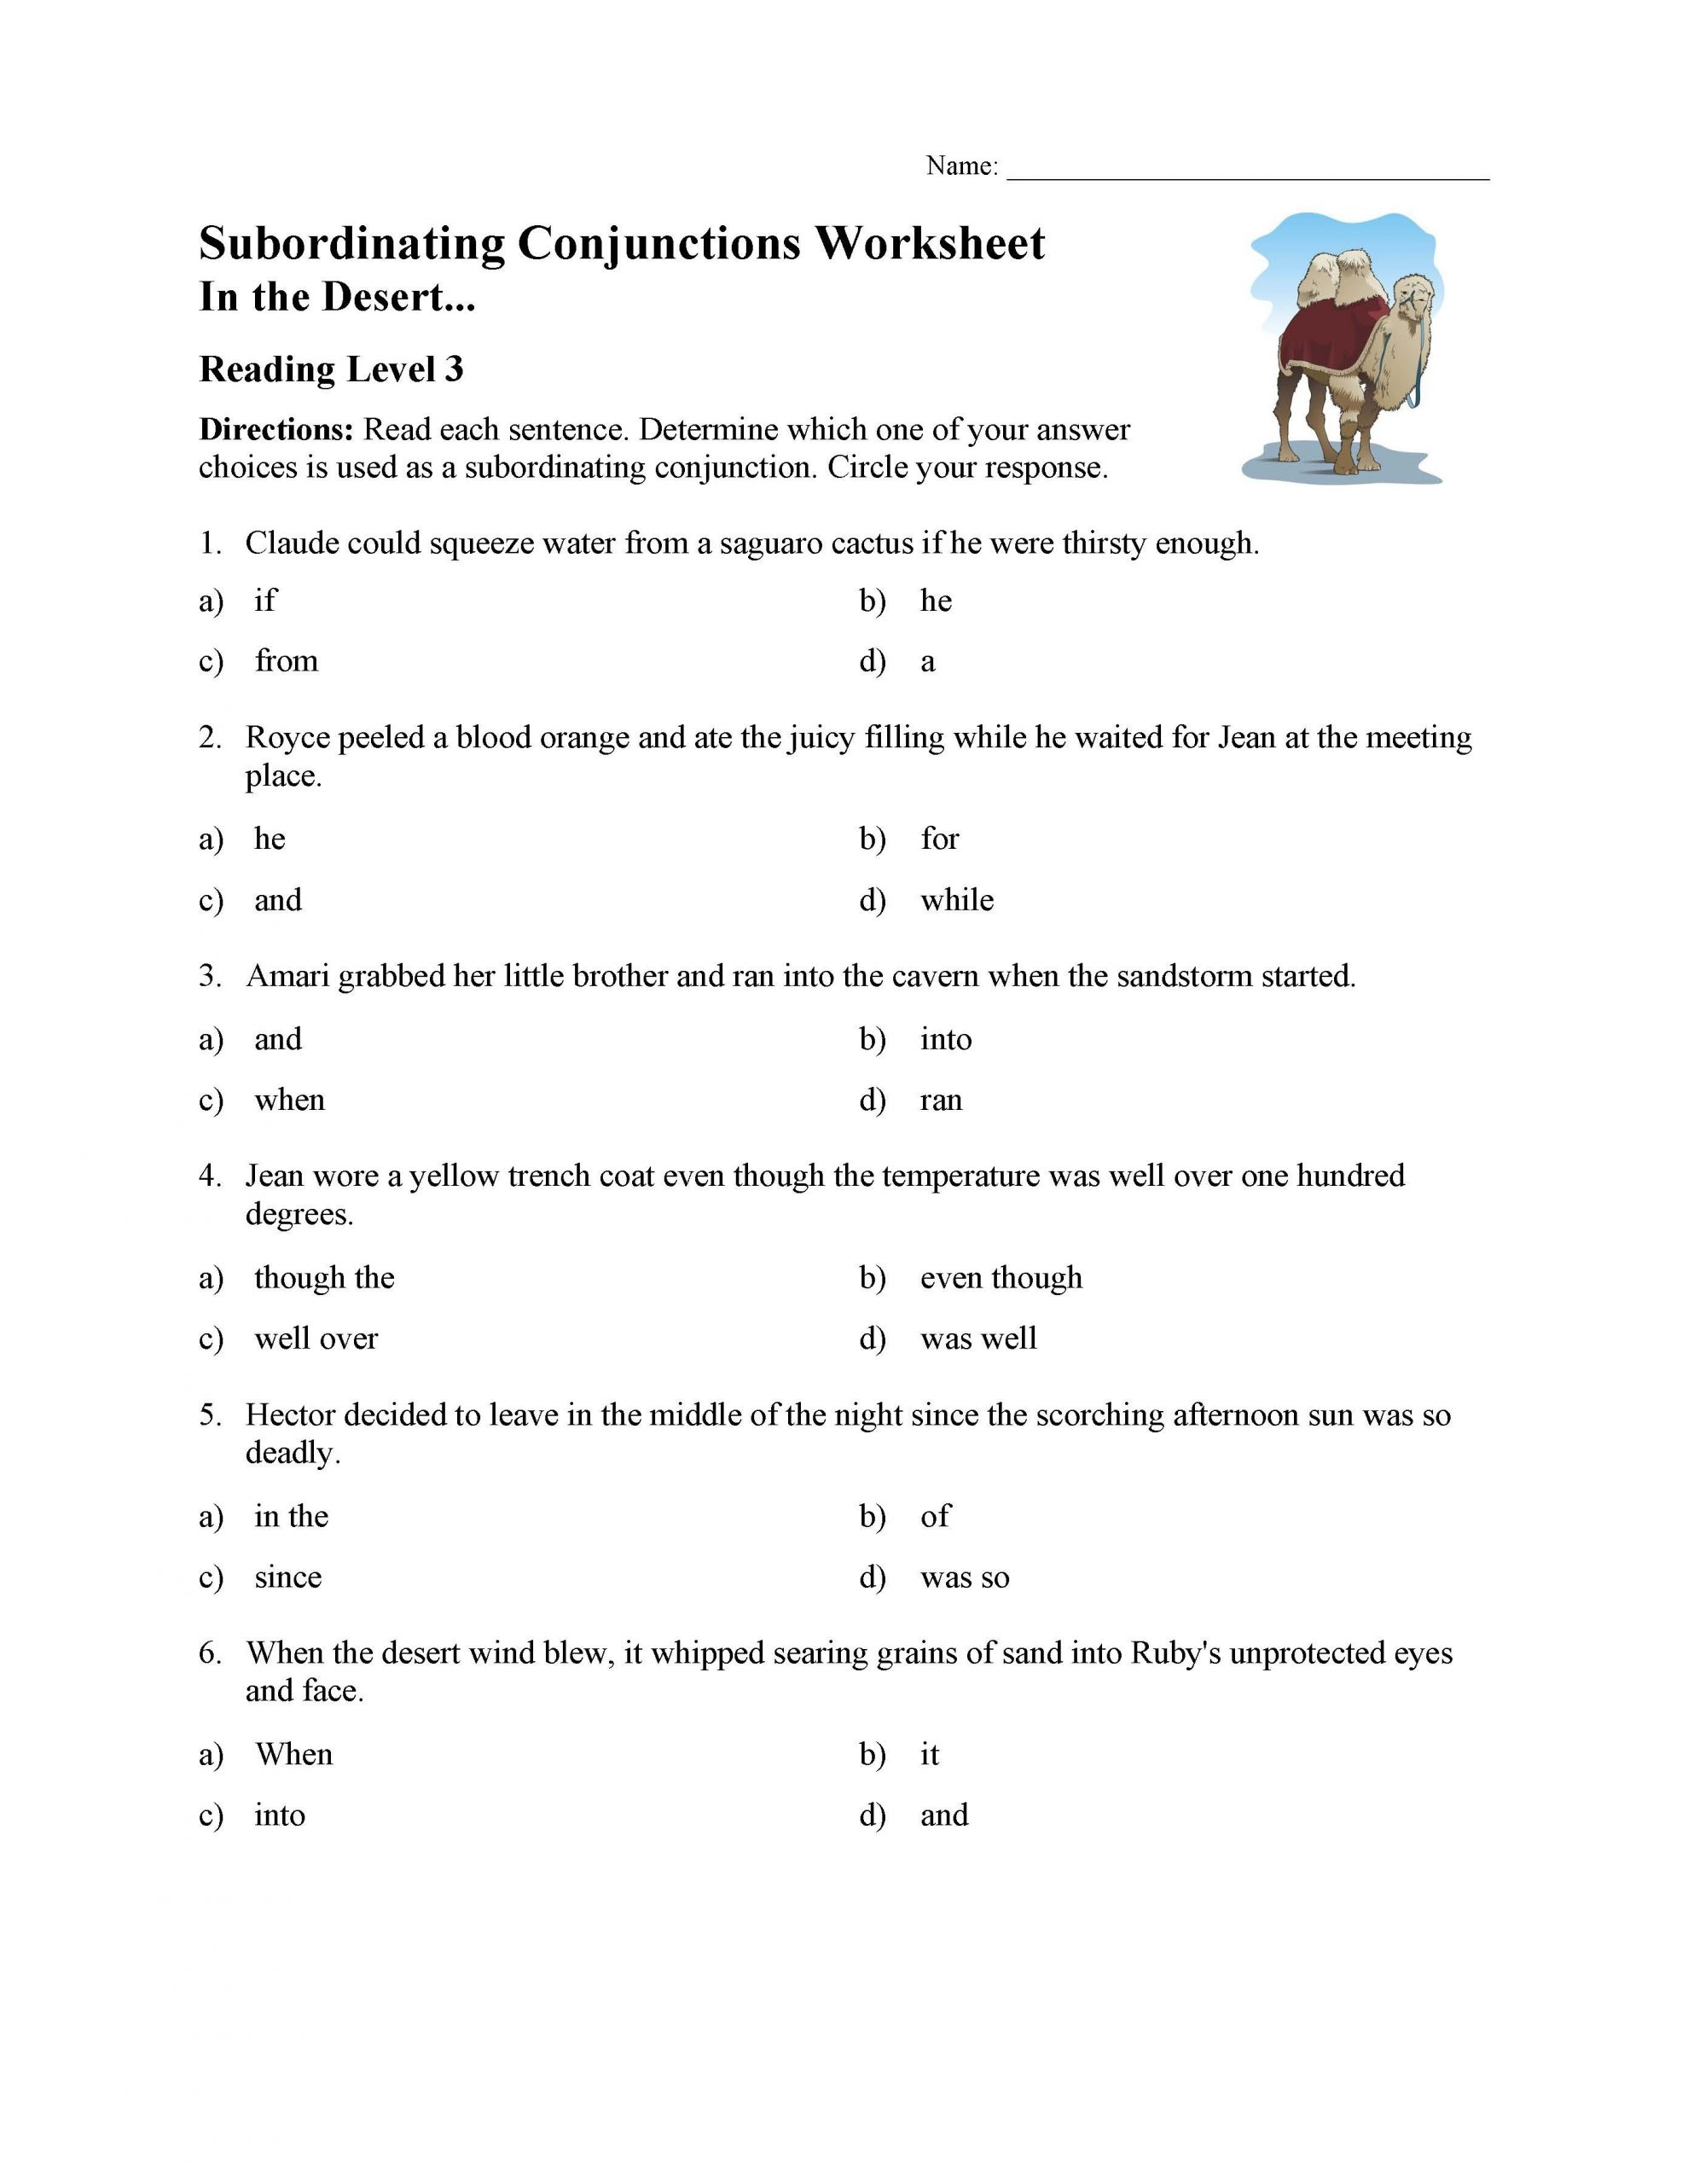 Conjunction Worksheets for Grade 3 Subordinating Conjunctions Worksheet Reading Level 3